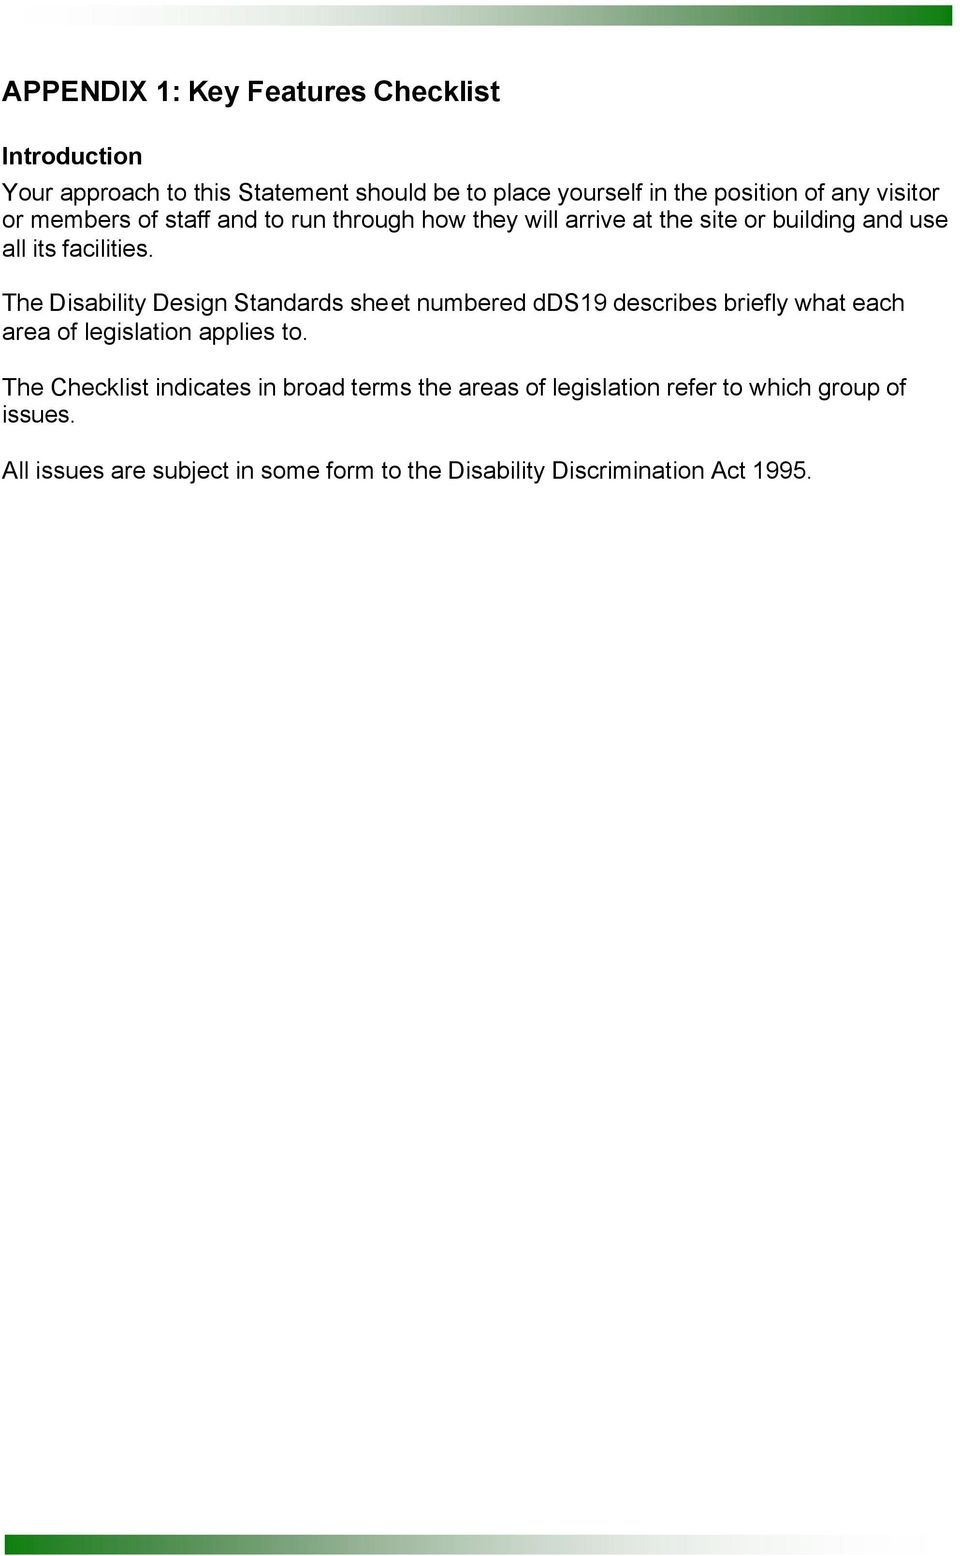 The Disability Design Standards sheet numbered dds19 describes briefly what each area of legislation applies to.